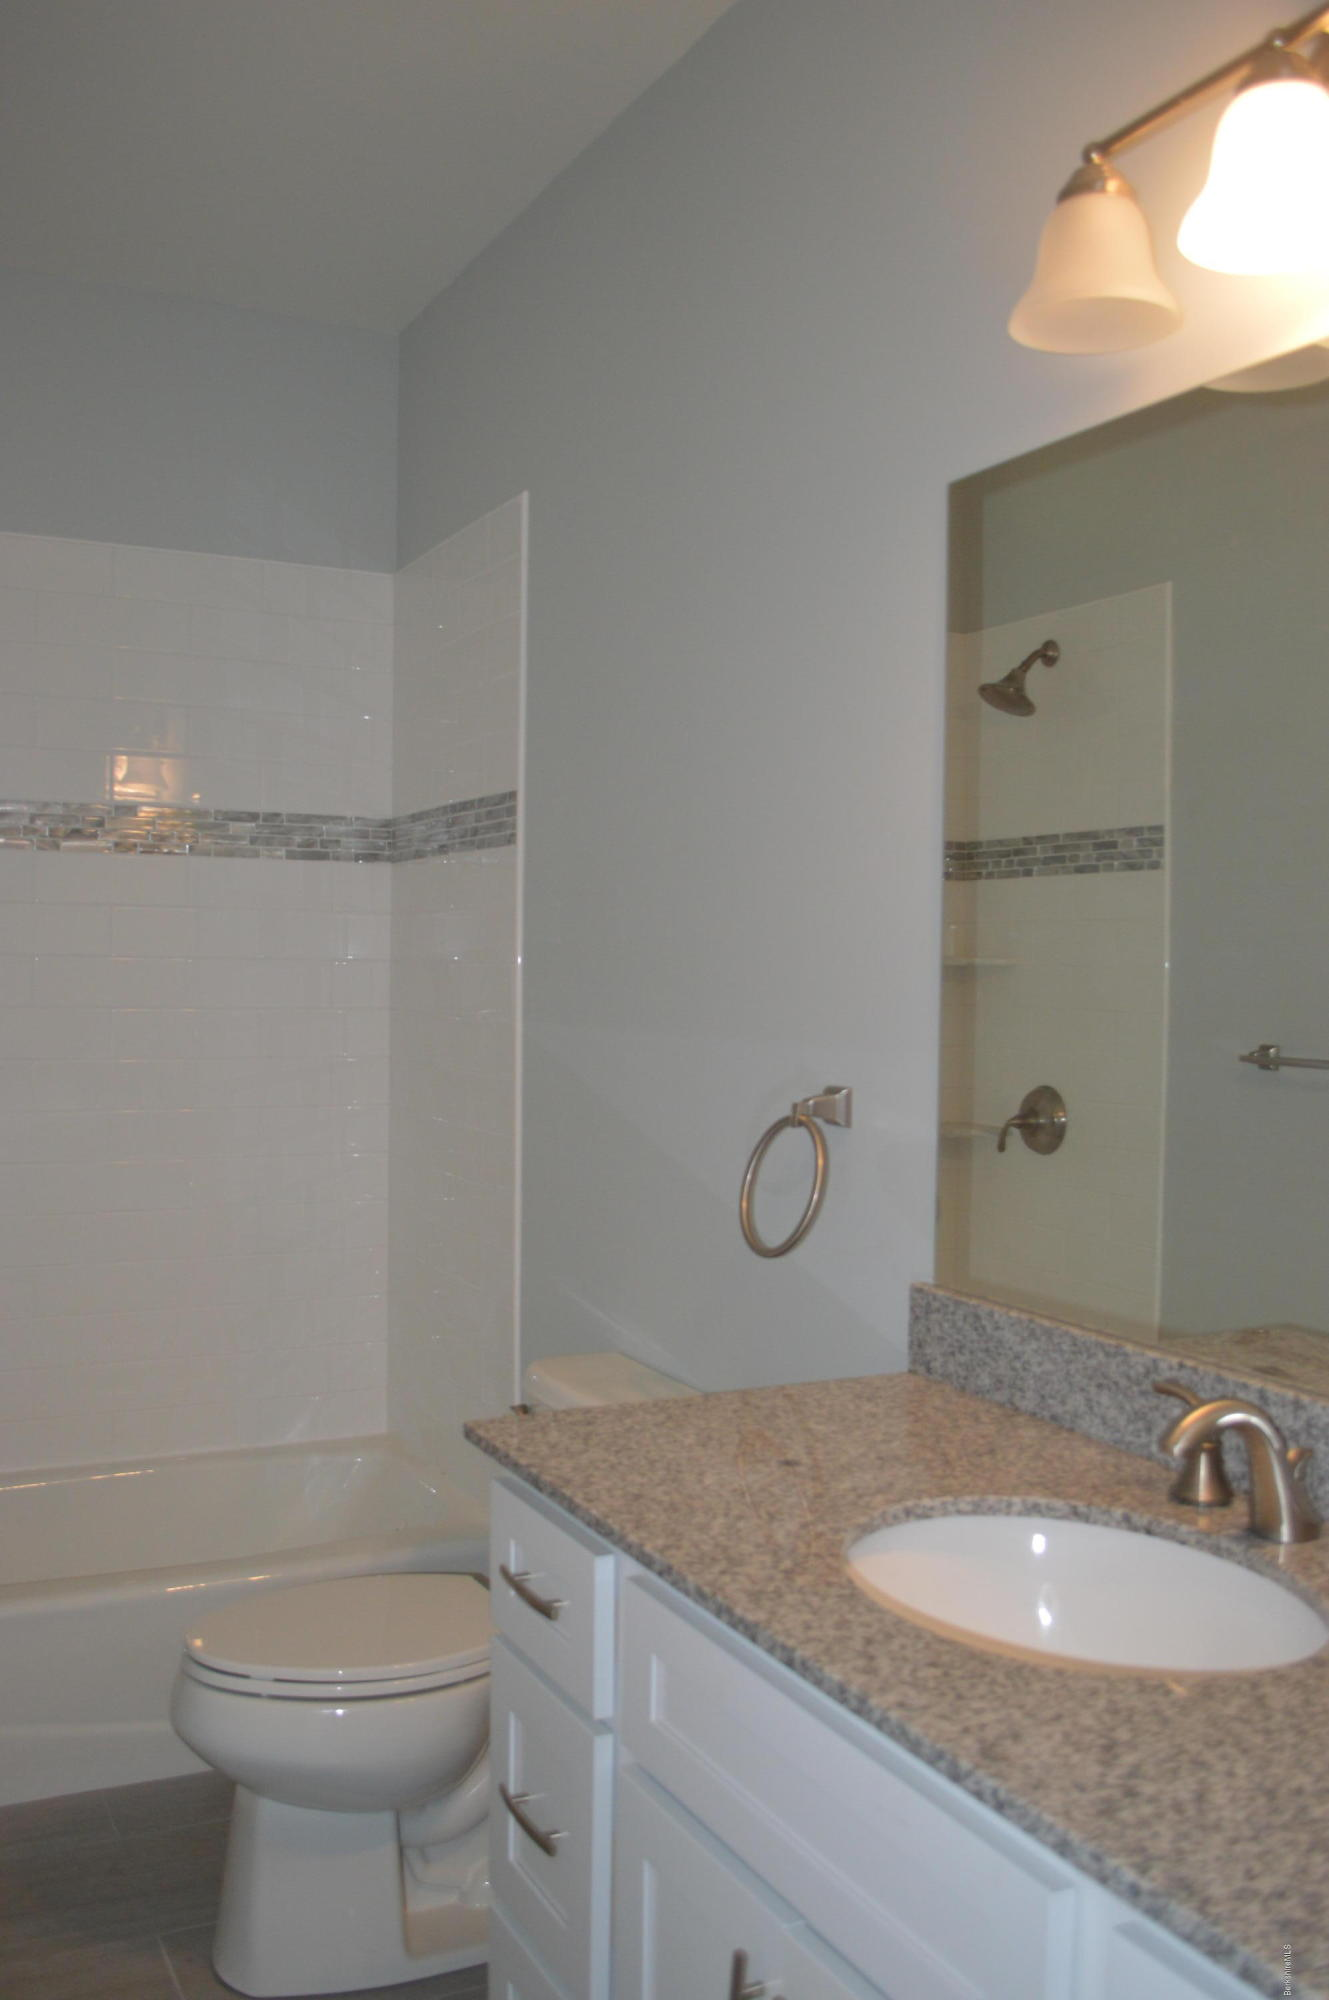 Property located at 15 Cherry Hill Dr Lot 12 Pittsfield MA 01201 photo